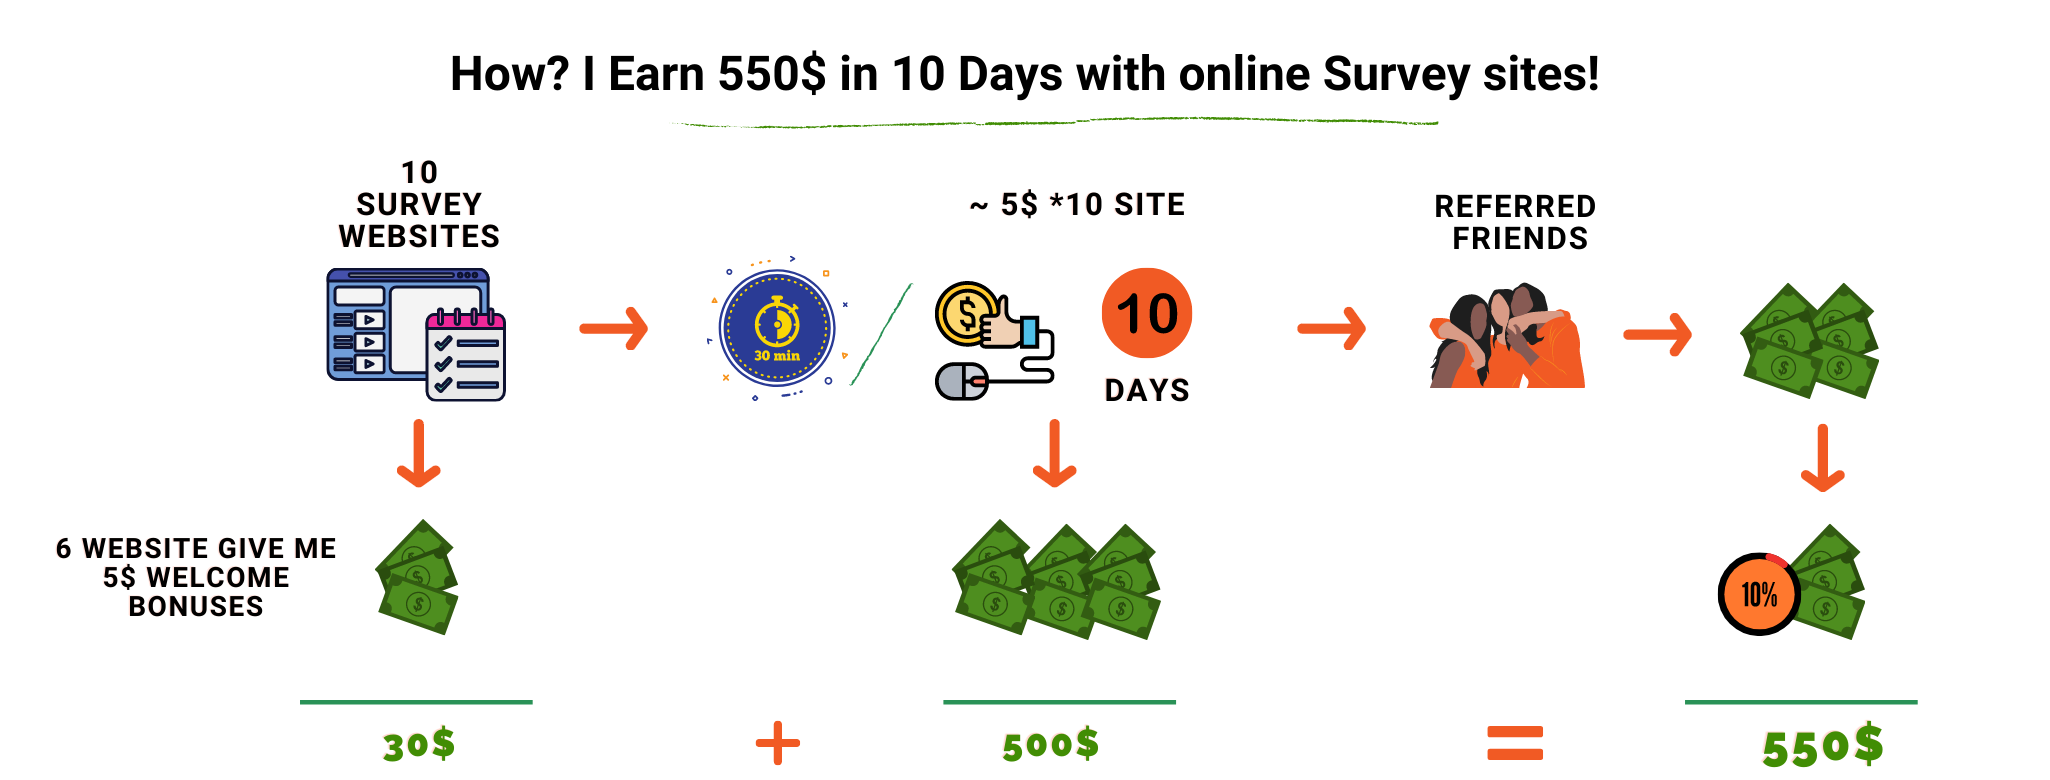 Refer and Earn Passive - How I Earn 550$ in 10 Days with online Paid Survey sites!